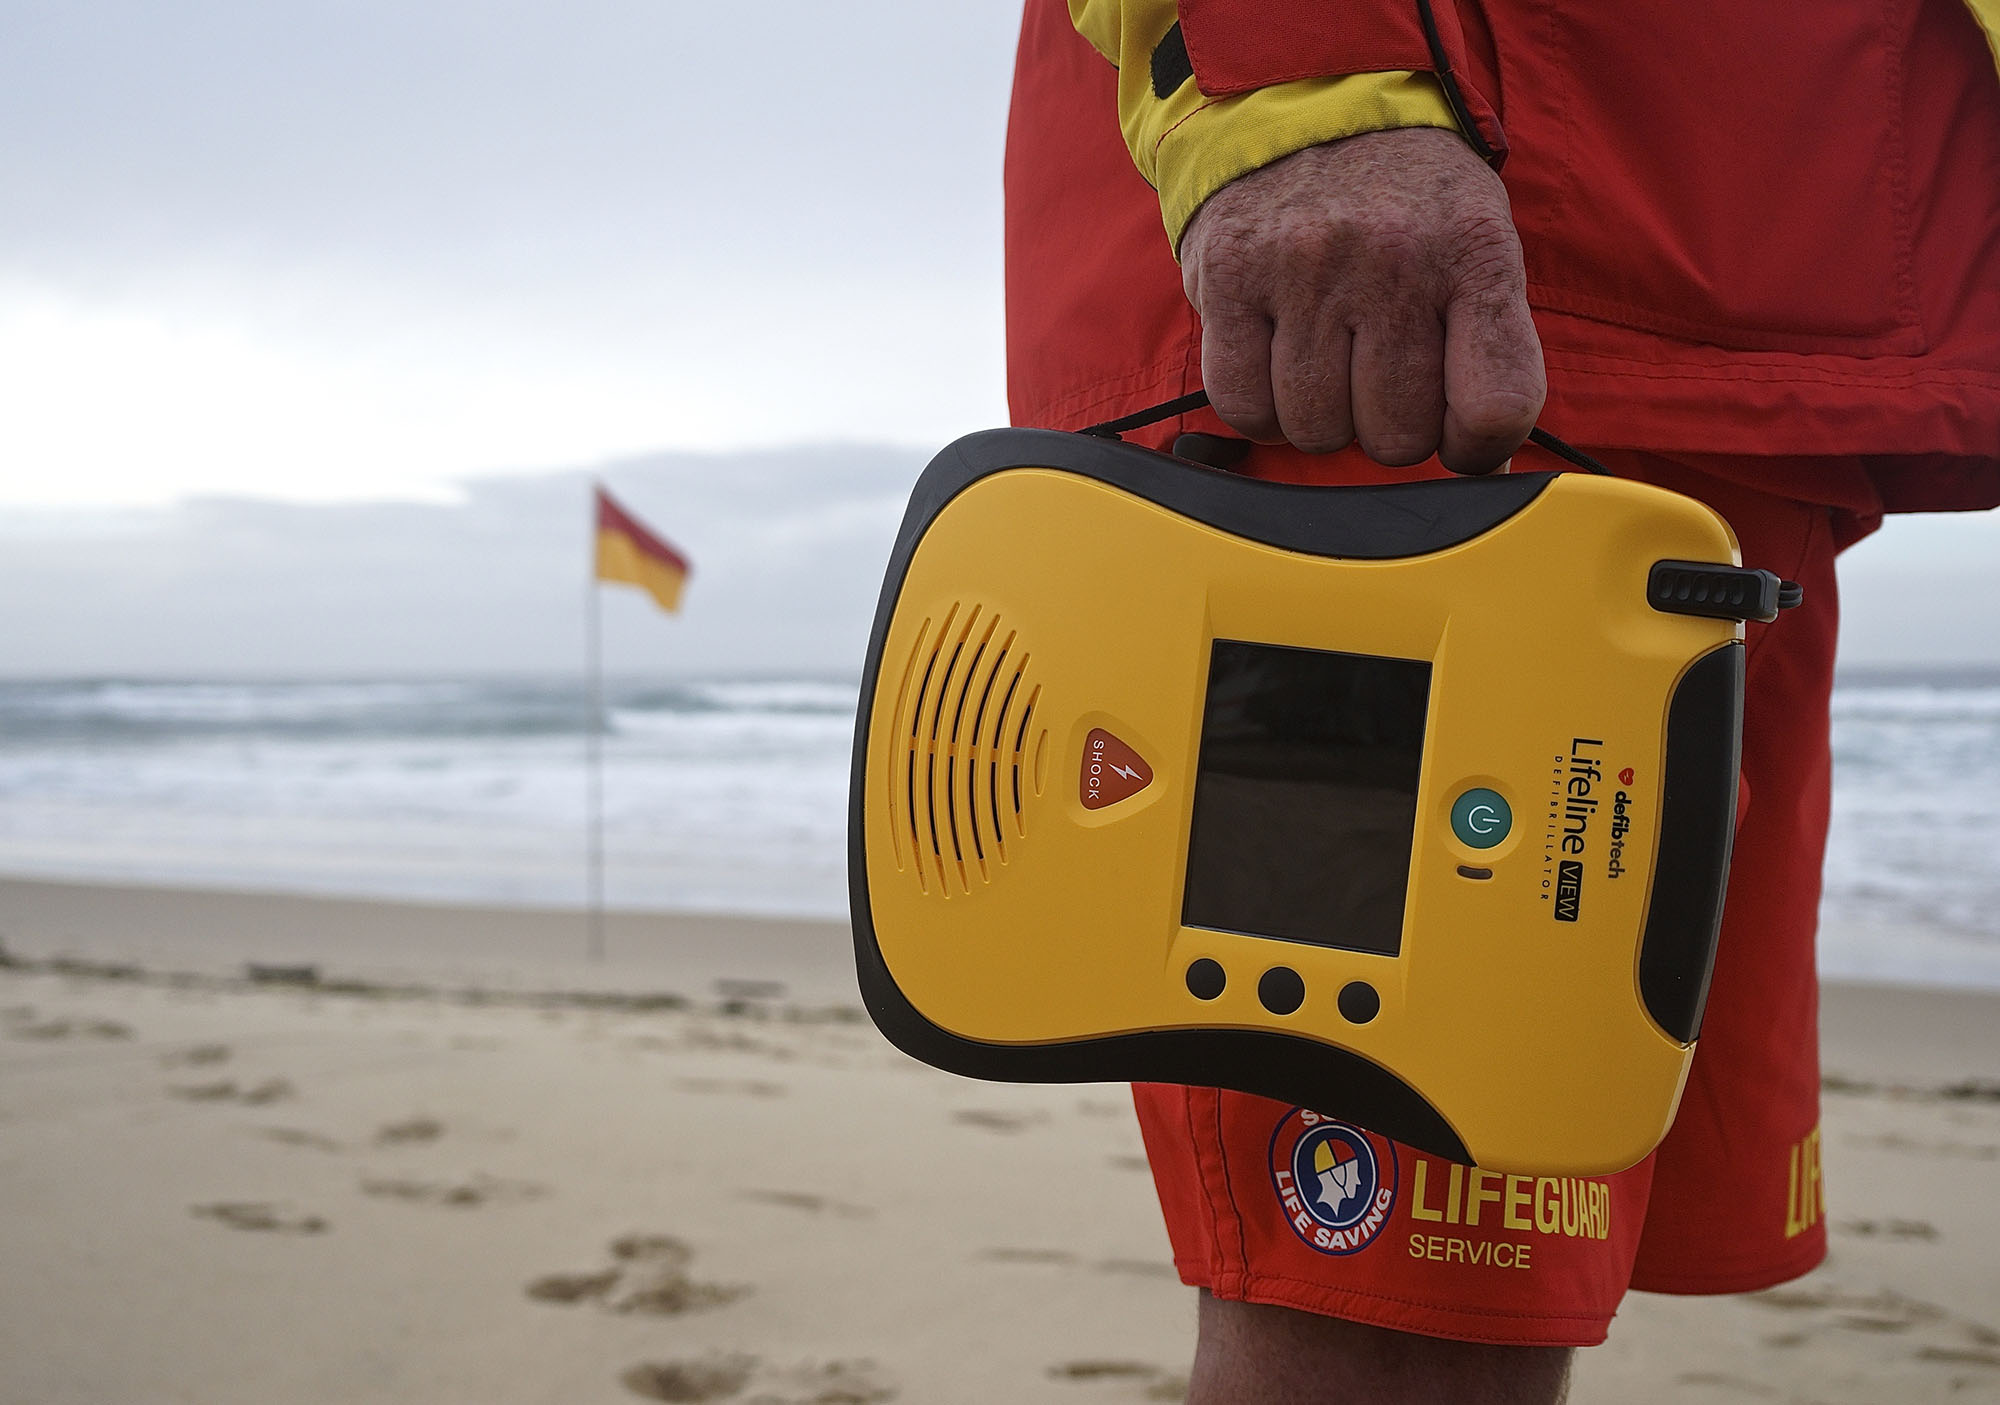 priority first aid lifeline view on beach